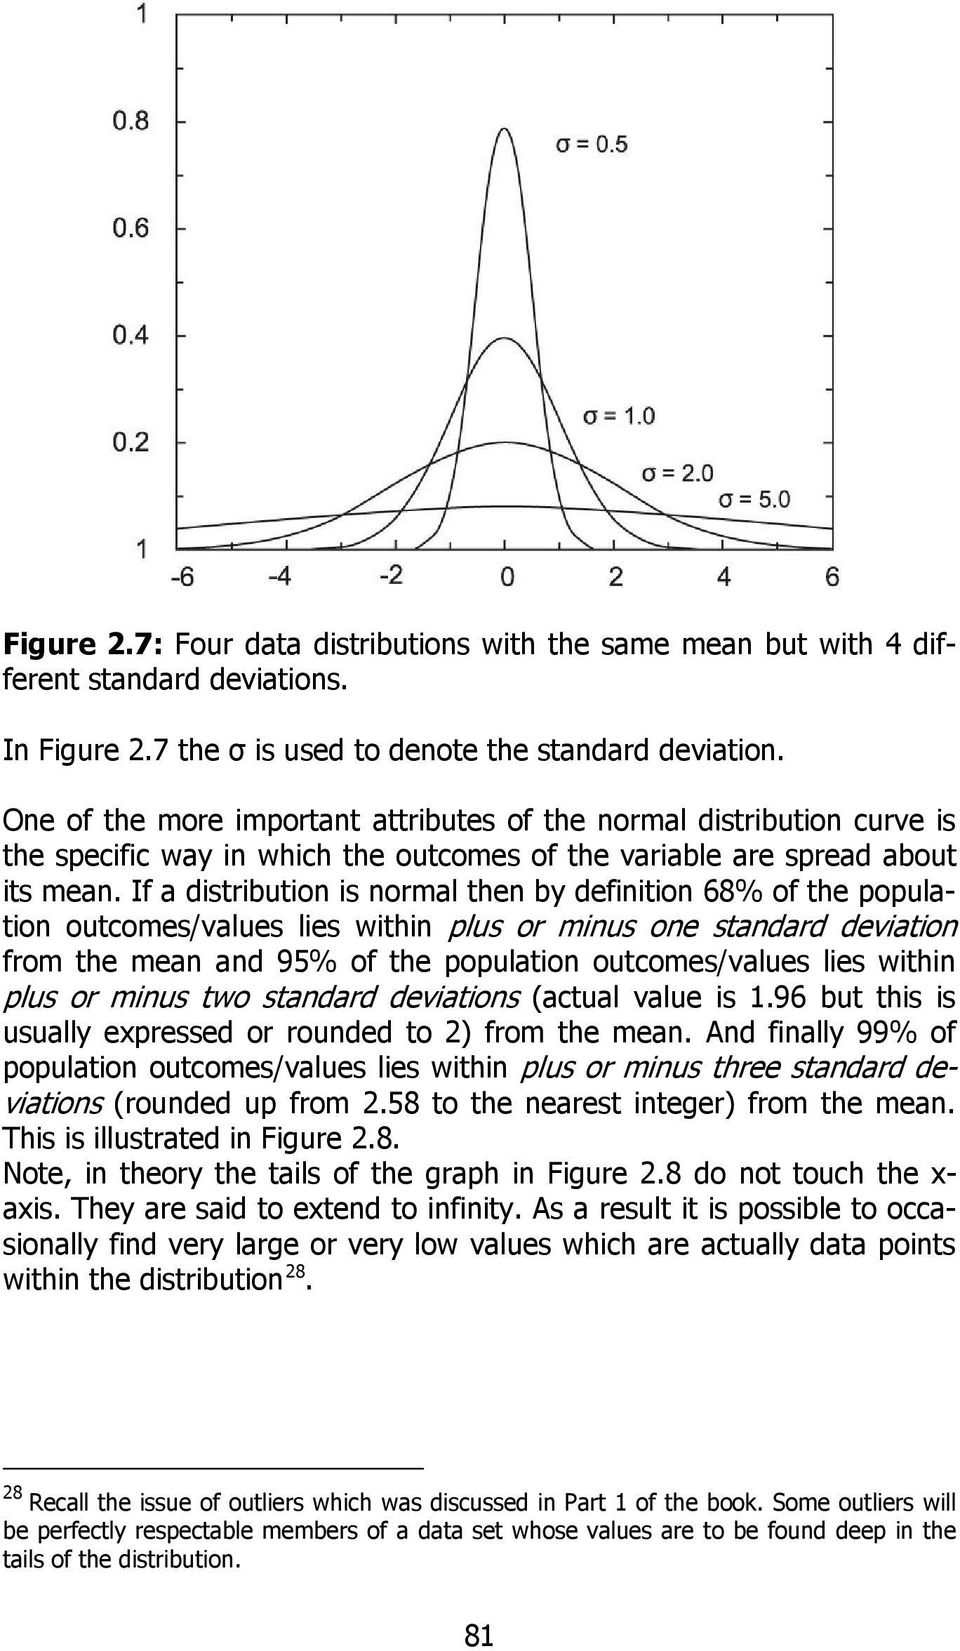 If a distribution is normal then by definition 68% of the population outcomes/values lies within plus or minus one standard deviation from the mean and 95% of the population outcomes/values lies